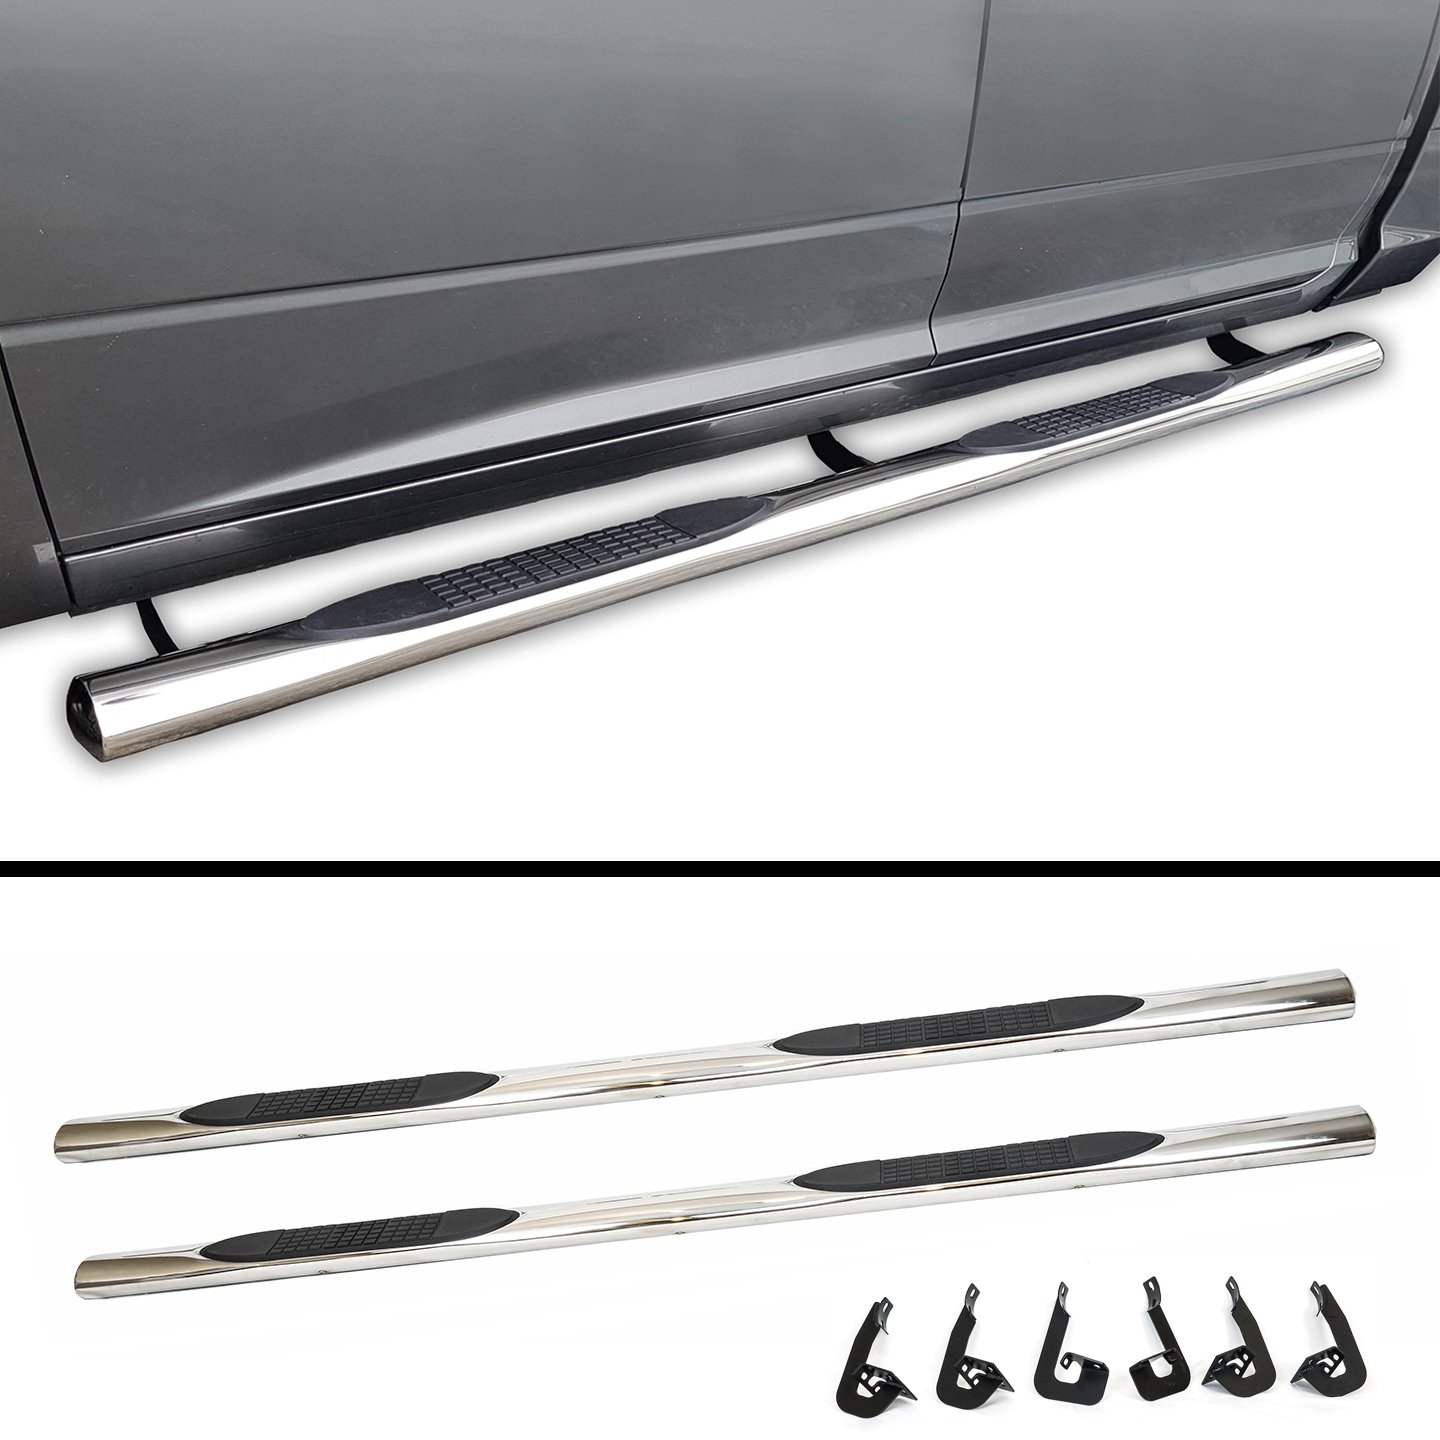 Galaxy Auto 4' OVAL STRAIGHT For 2009-14 FORD F150 SUPER CAB - Side Steps Nerf Bars Running Boards (Chrome)